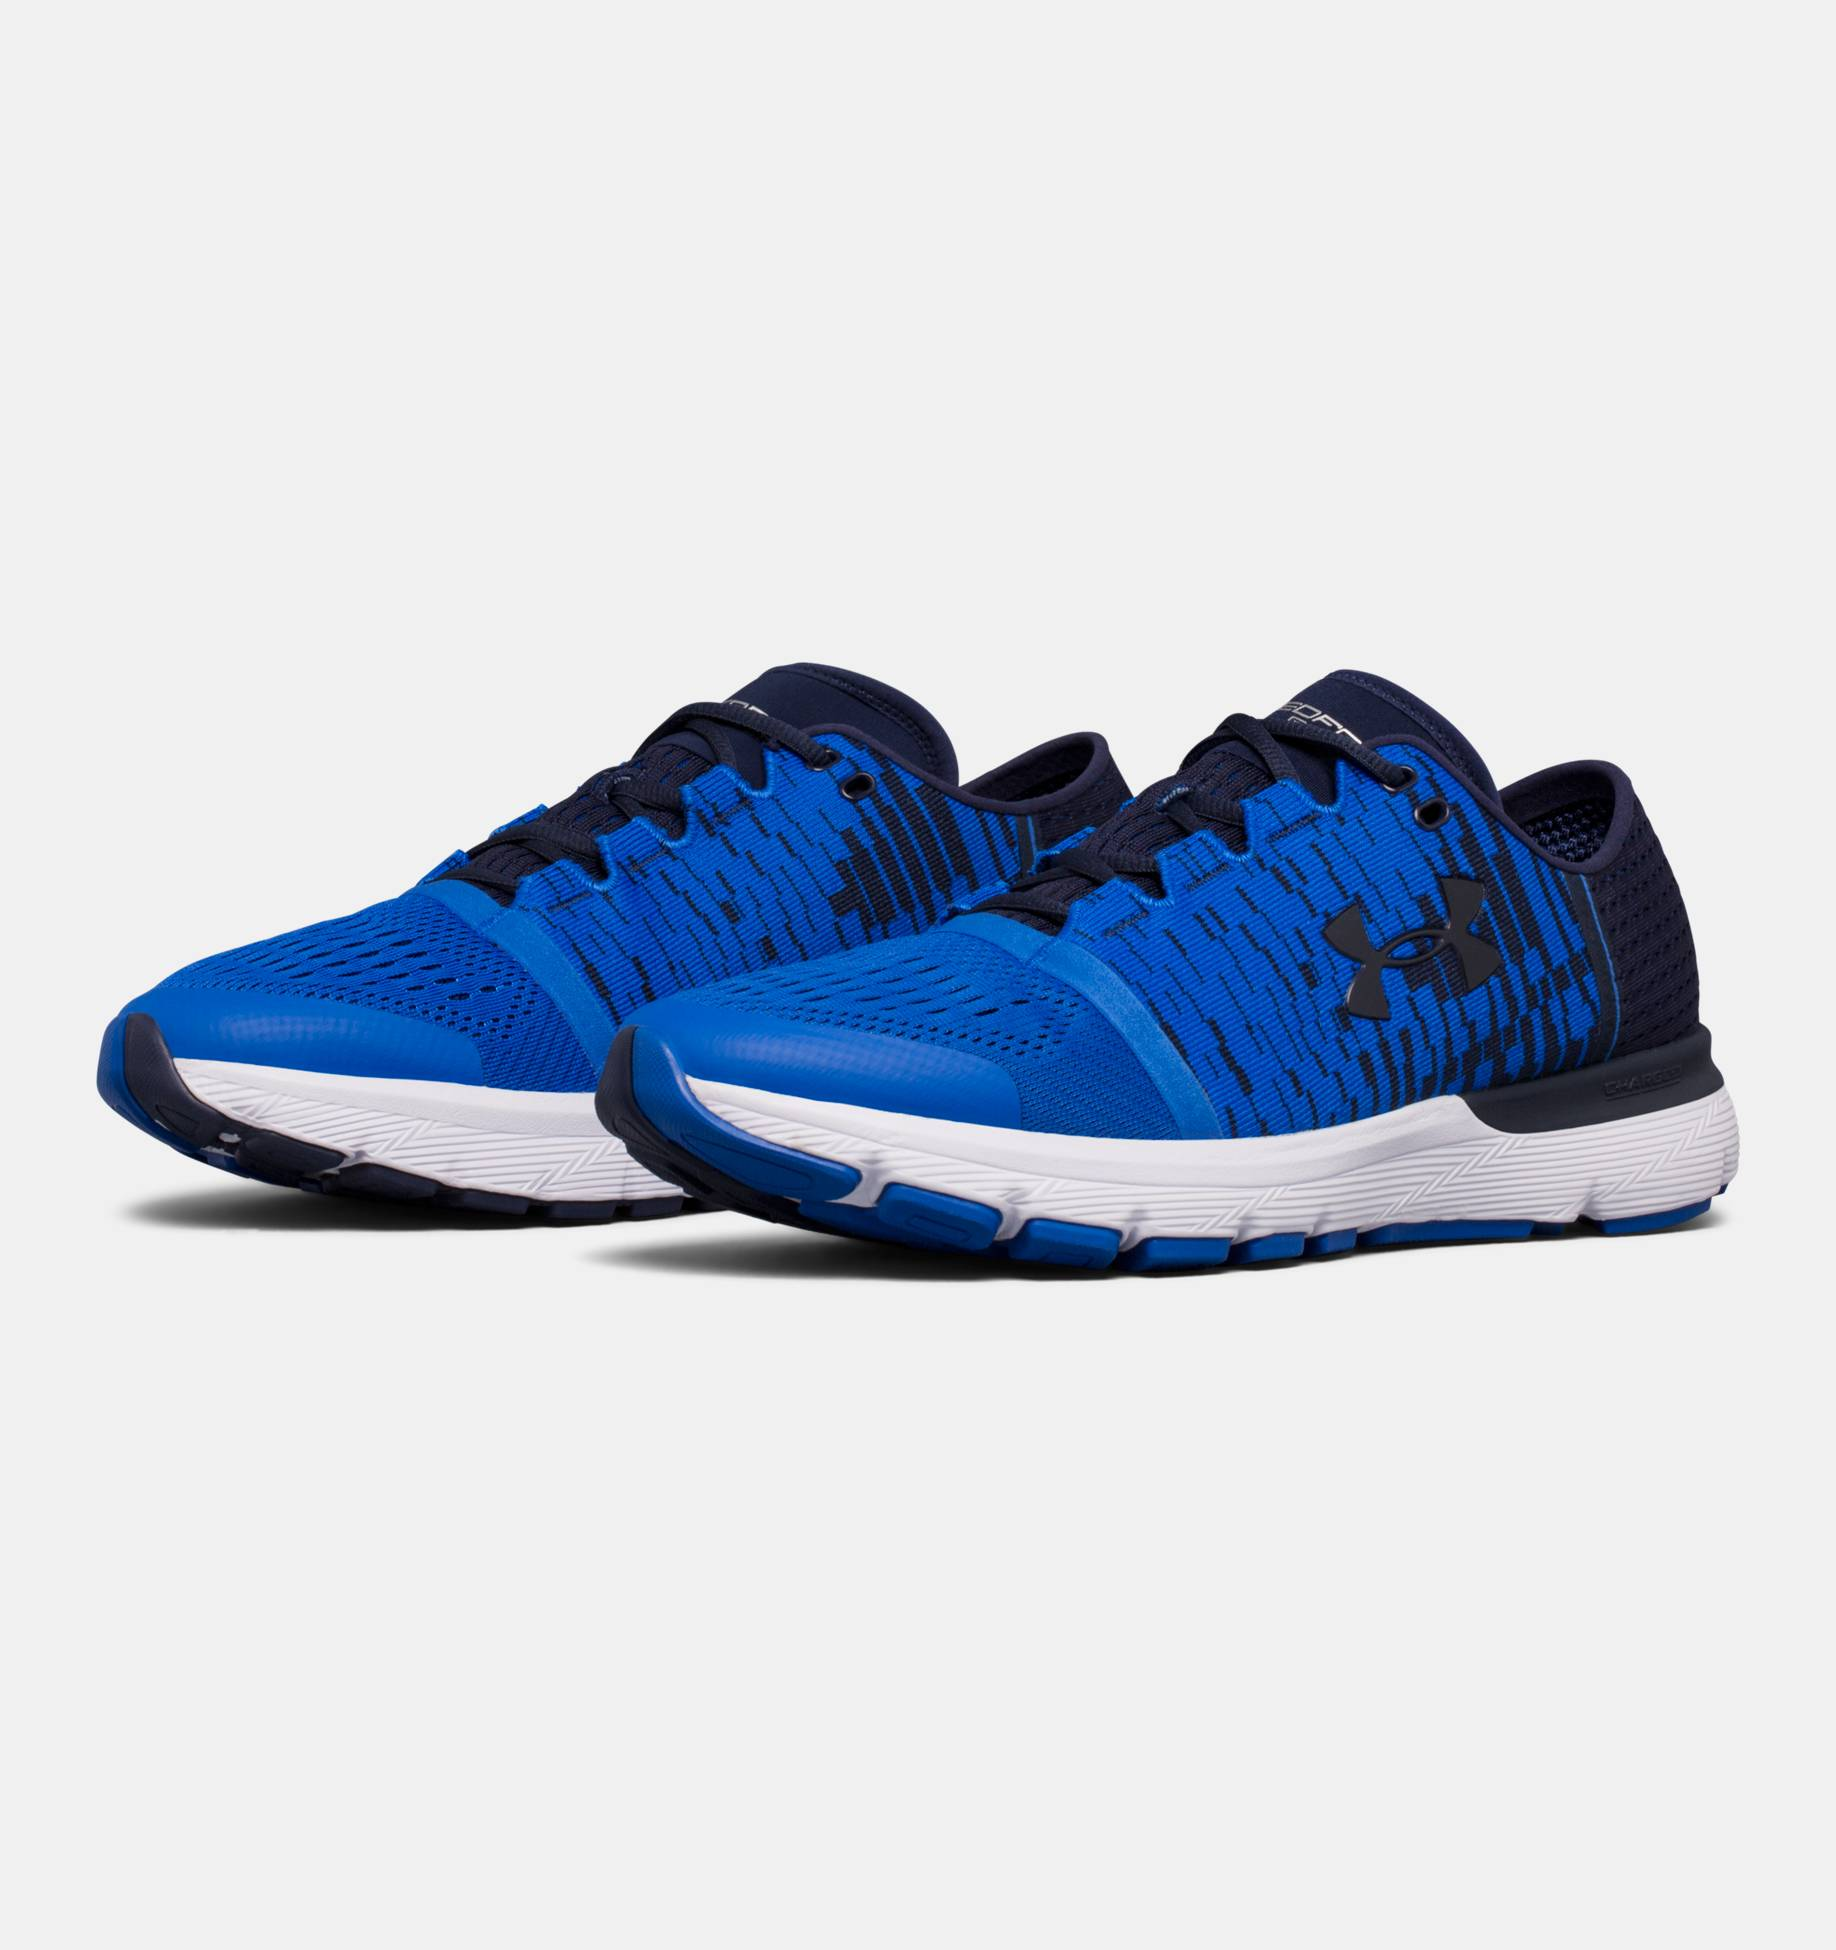 3645502ad616 ... Кроссовки мужские Under Armour Speedform Gemini 3 GR Midnight  Navy Ultra Blue Midnight Navy ...